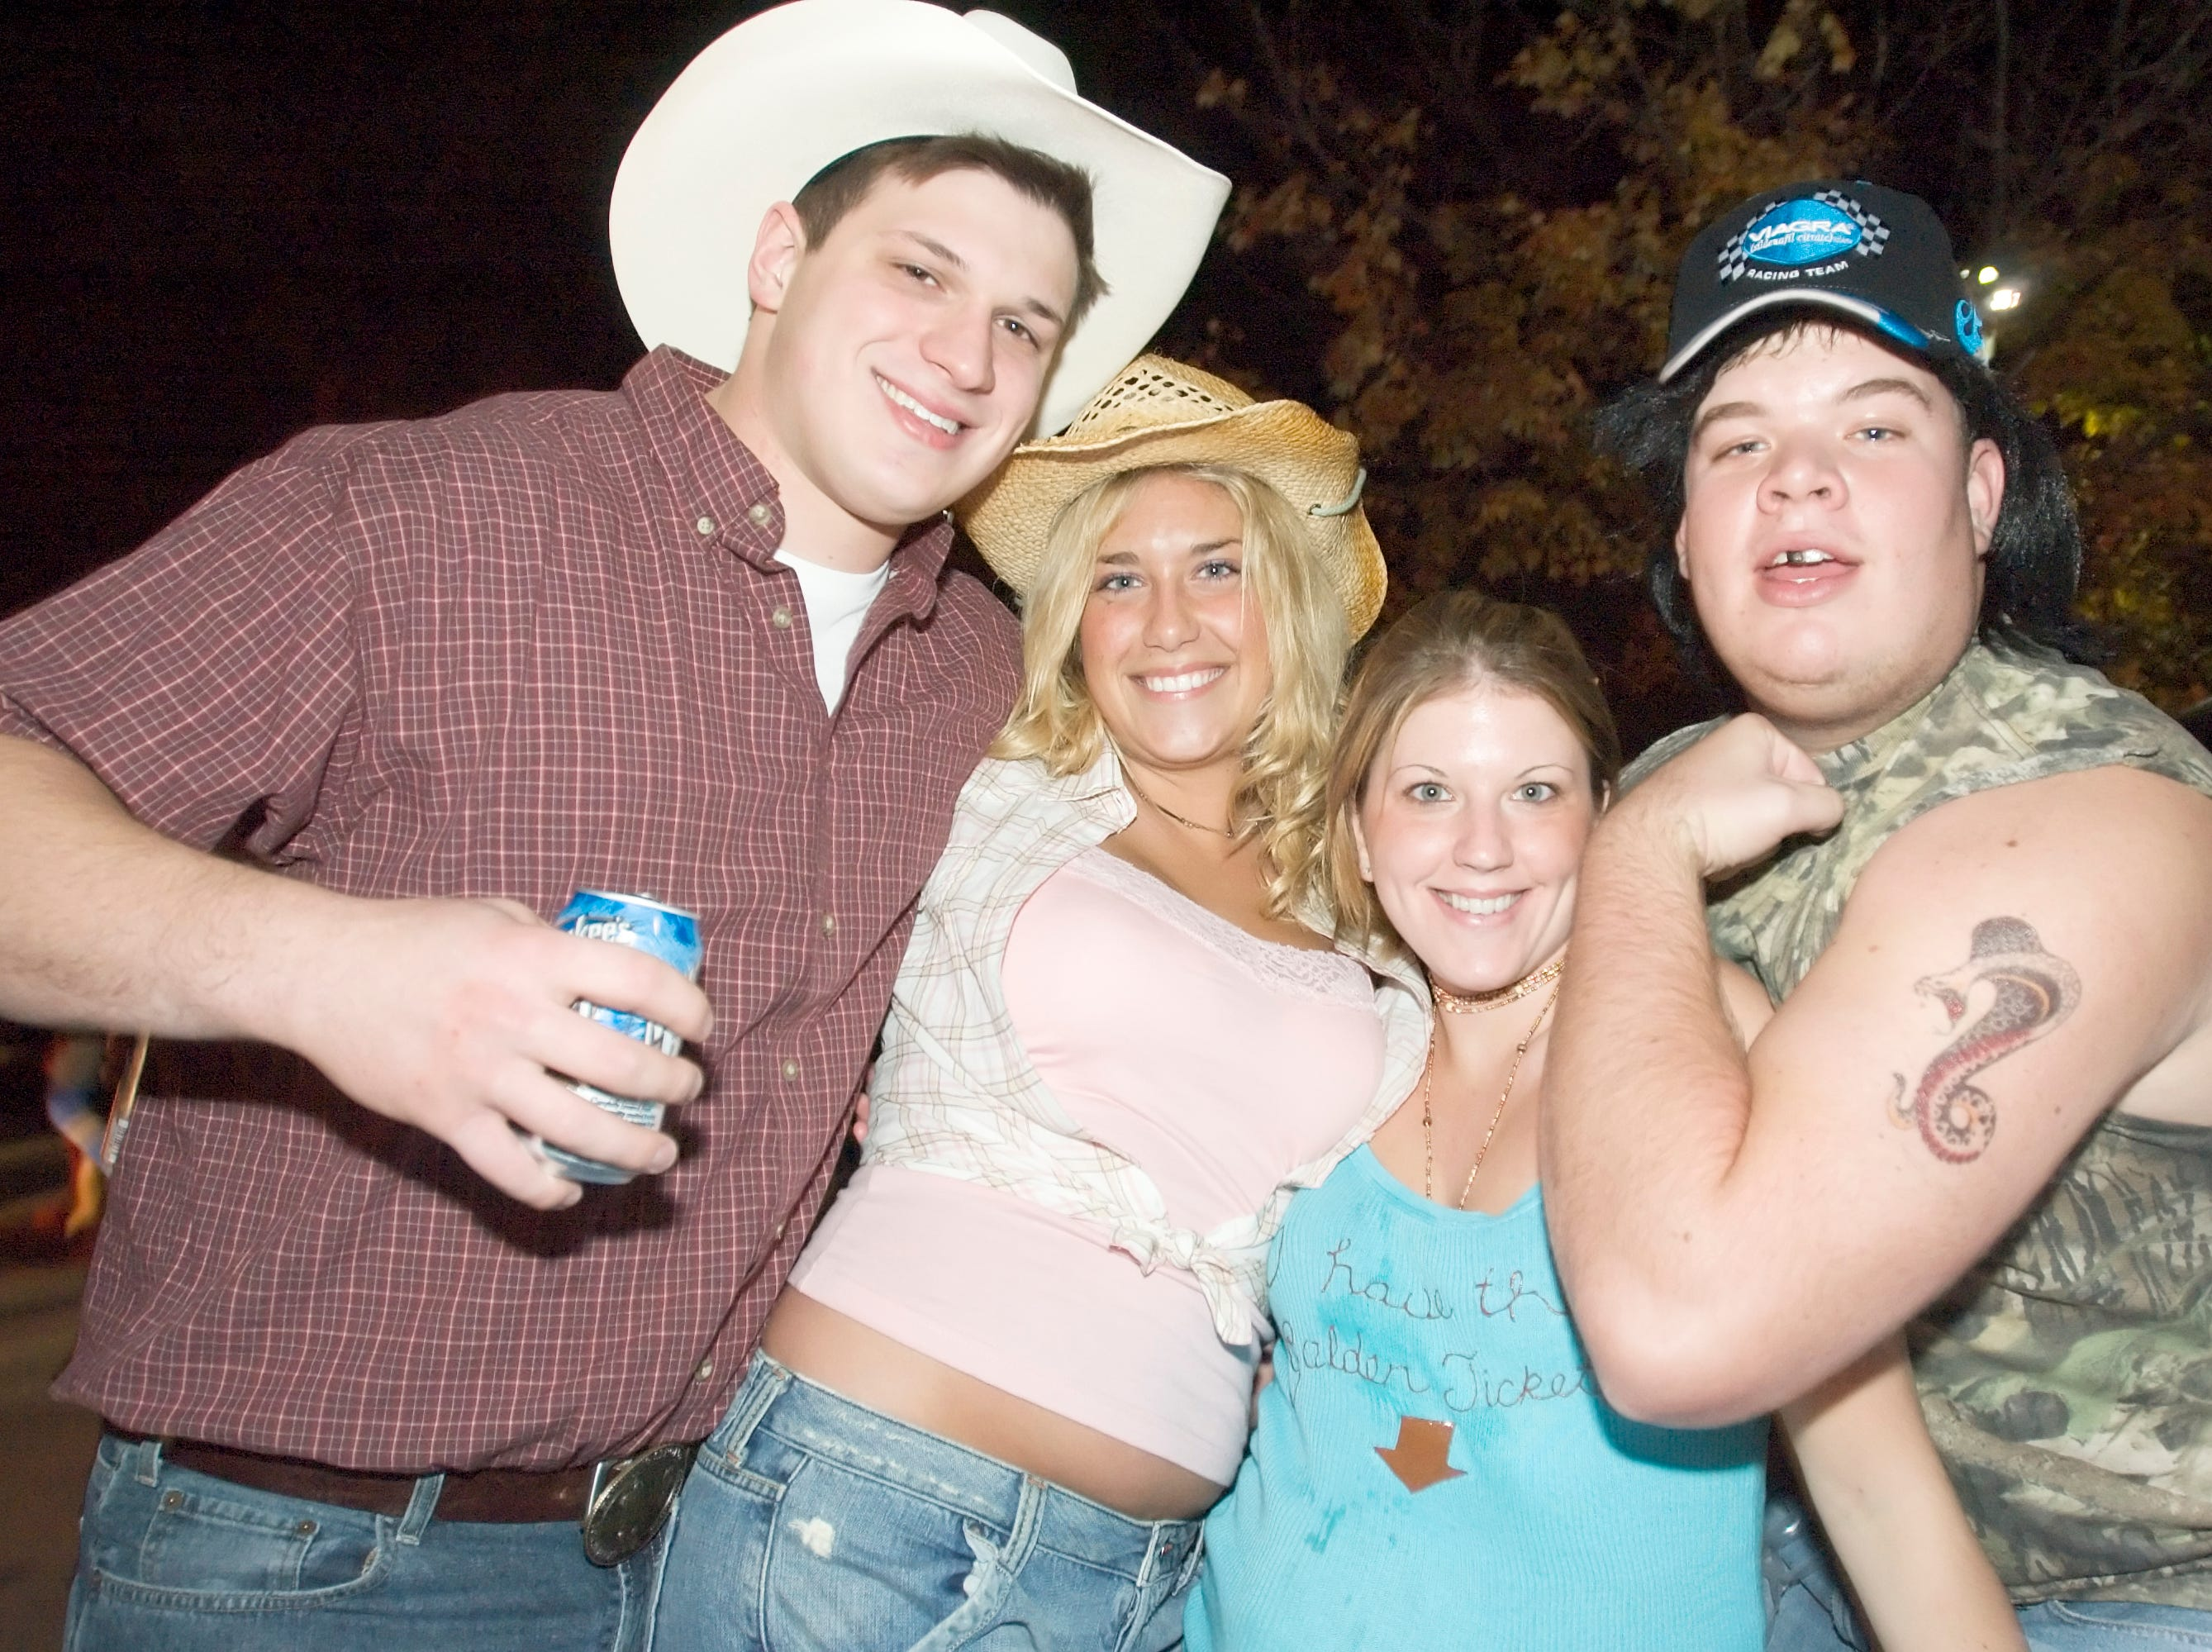 2005: This is William Leone, Rachel Dickow, Kim DeLorenzo and Ed Washburn out side the Phi Kappa Psi Halloween party.  Check out Washburn's cobra tattoo... little touches, little touches.